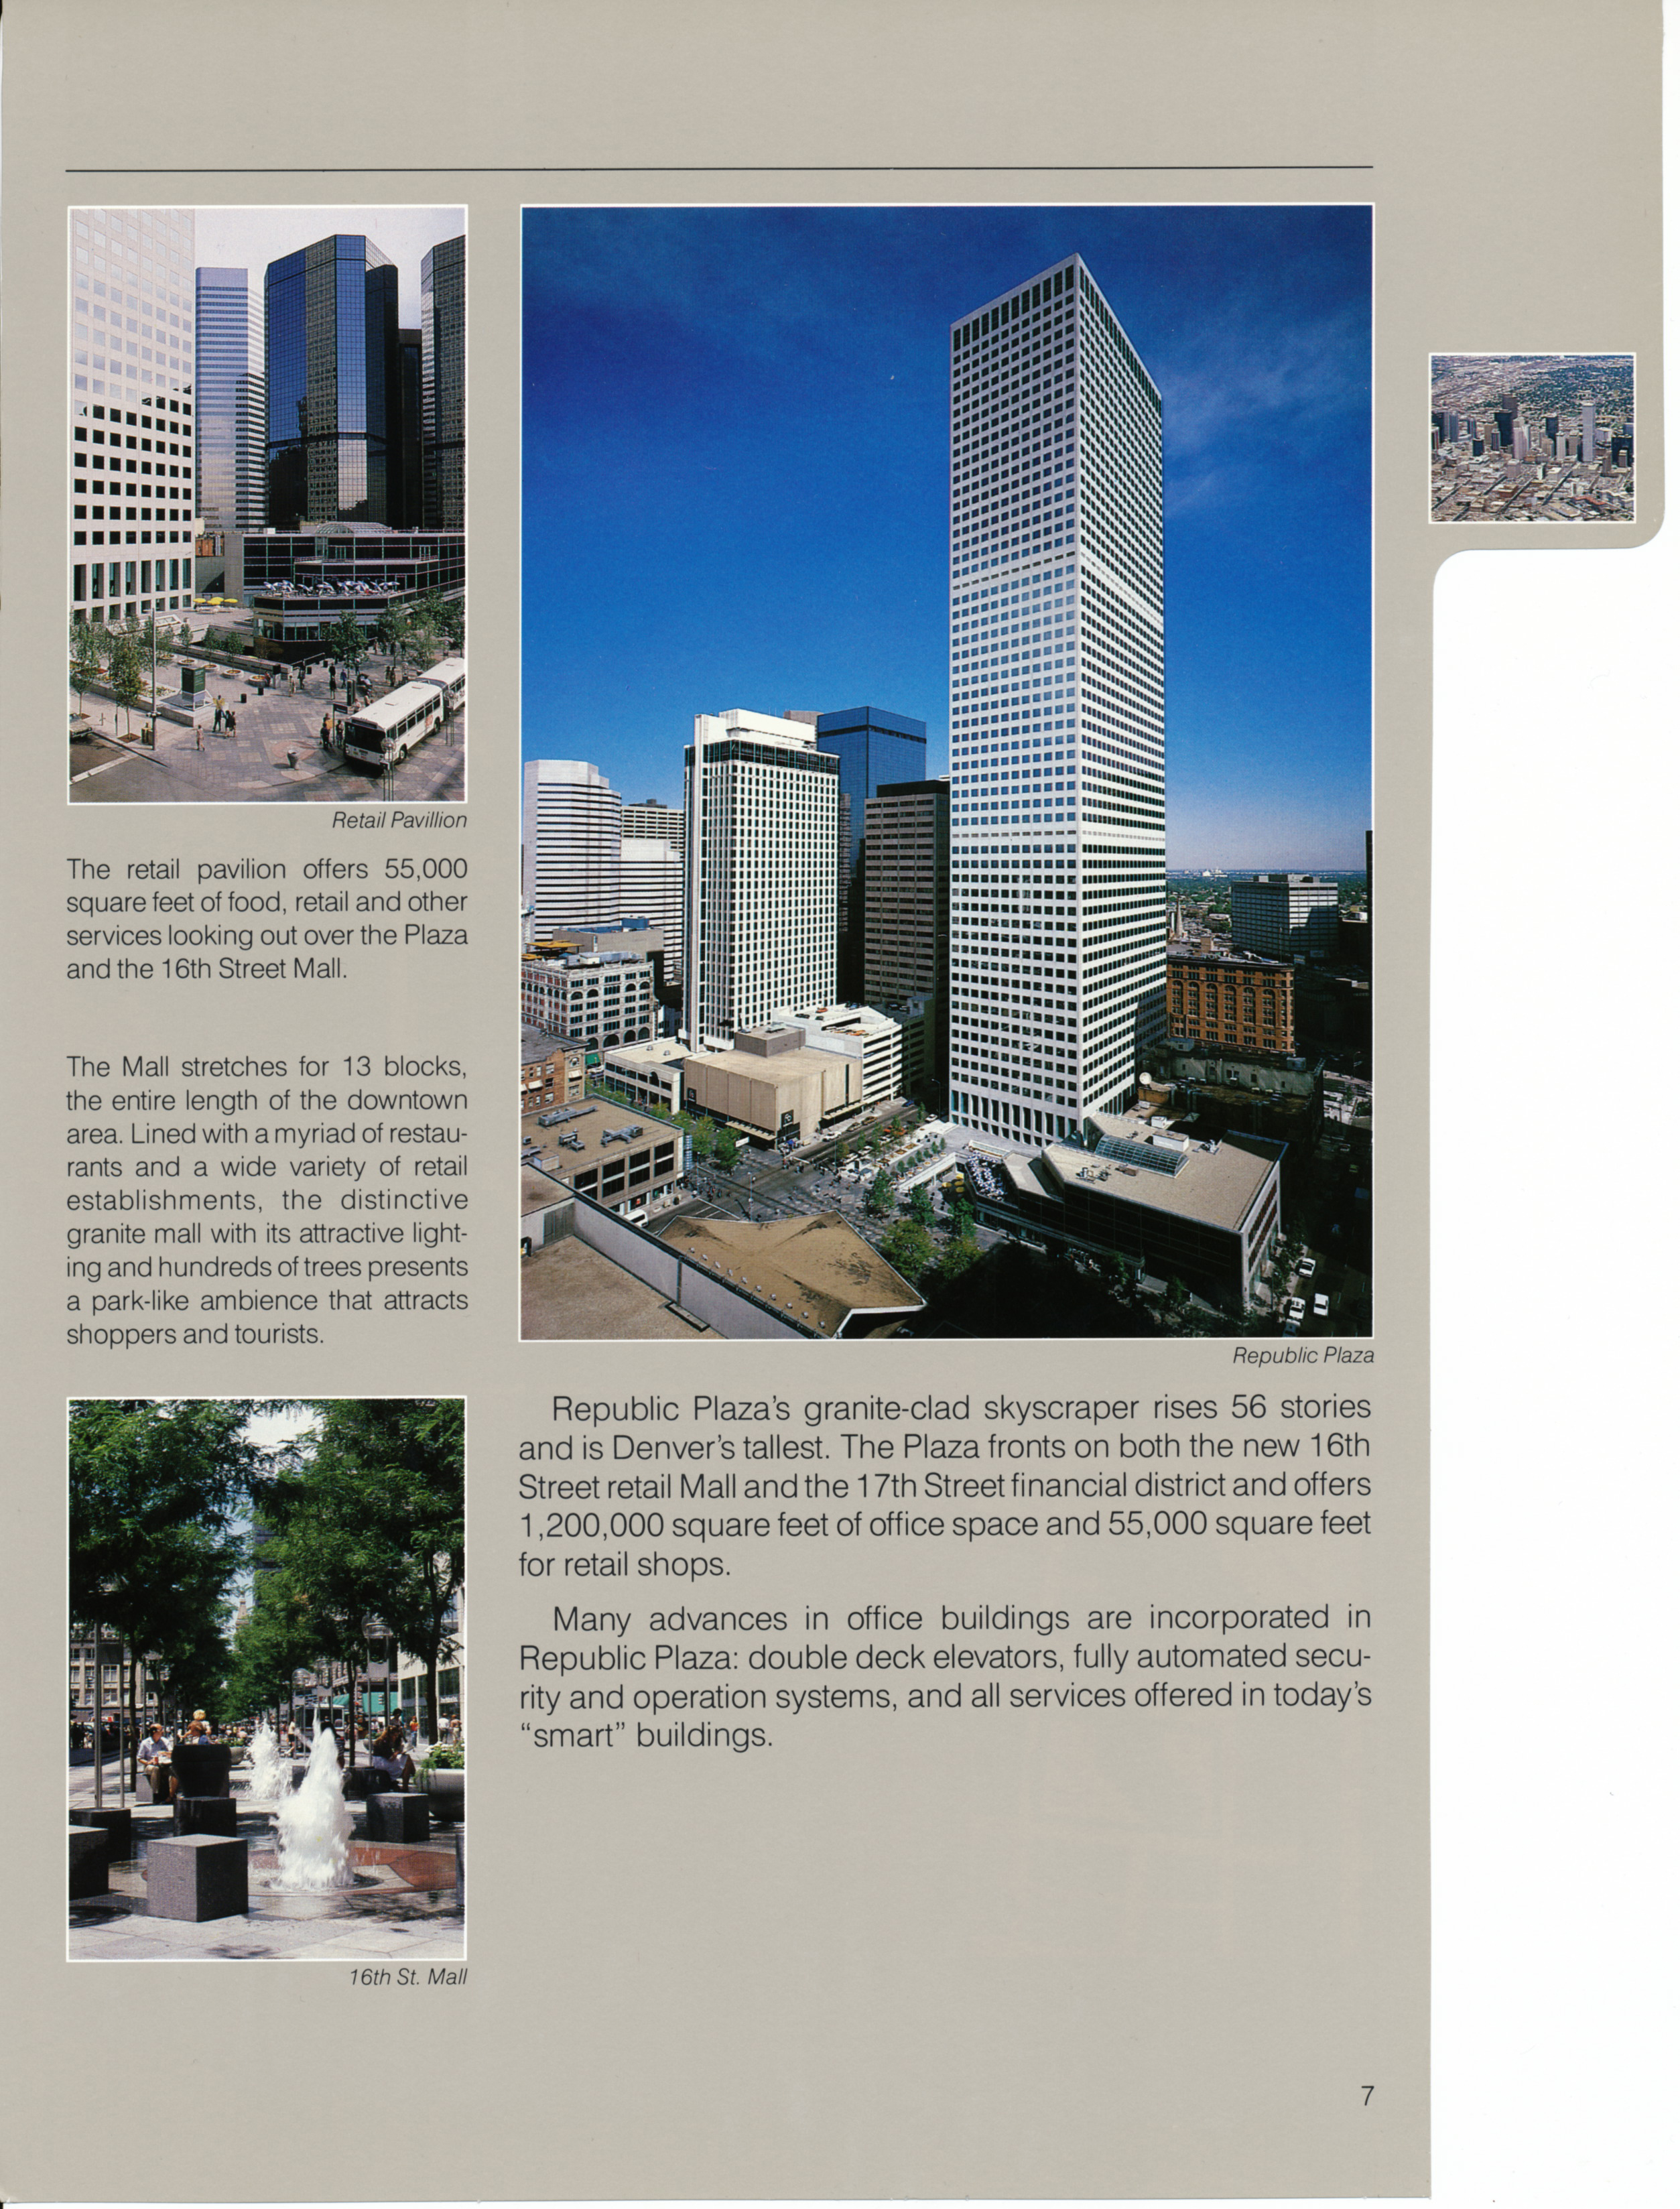 Brochure page for Republic Plaza, featuring aerial and interior images.